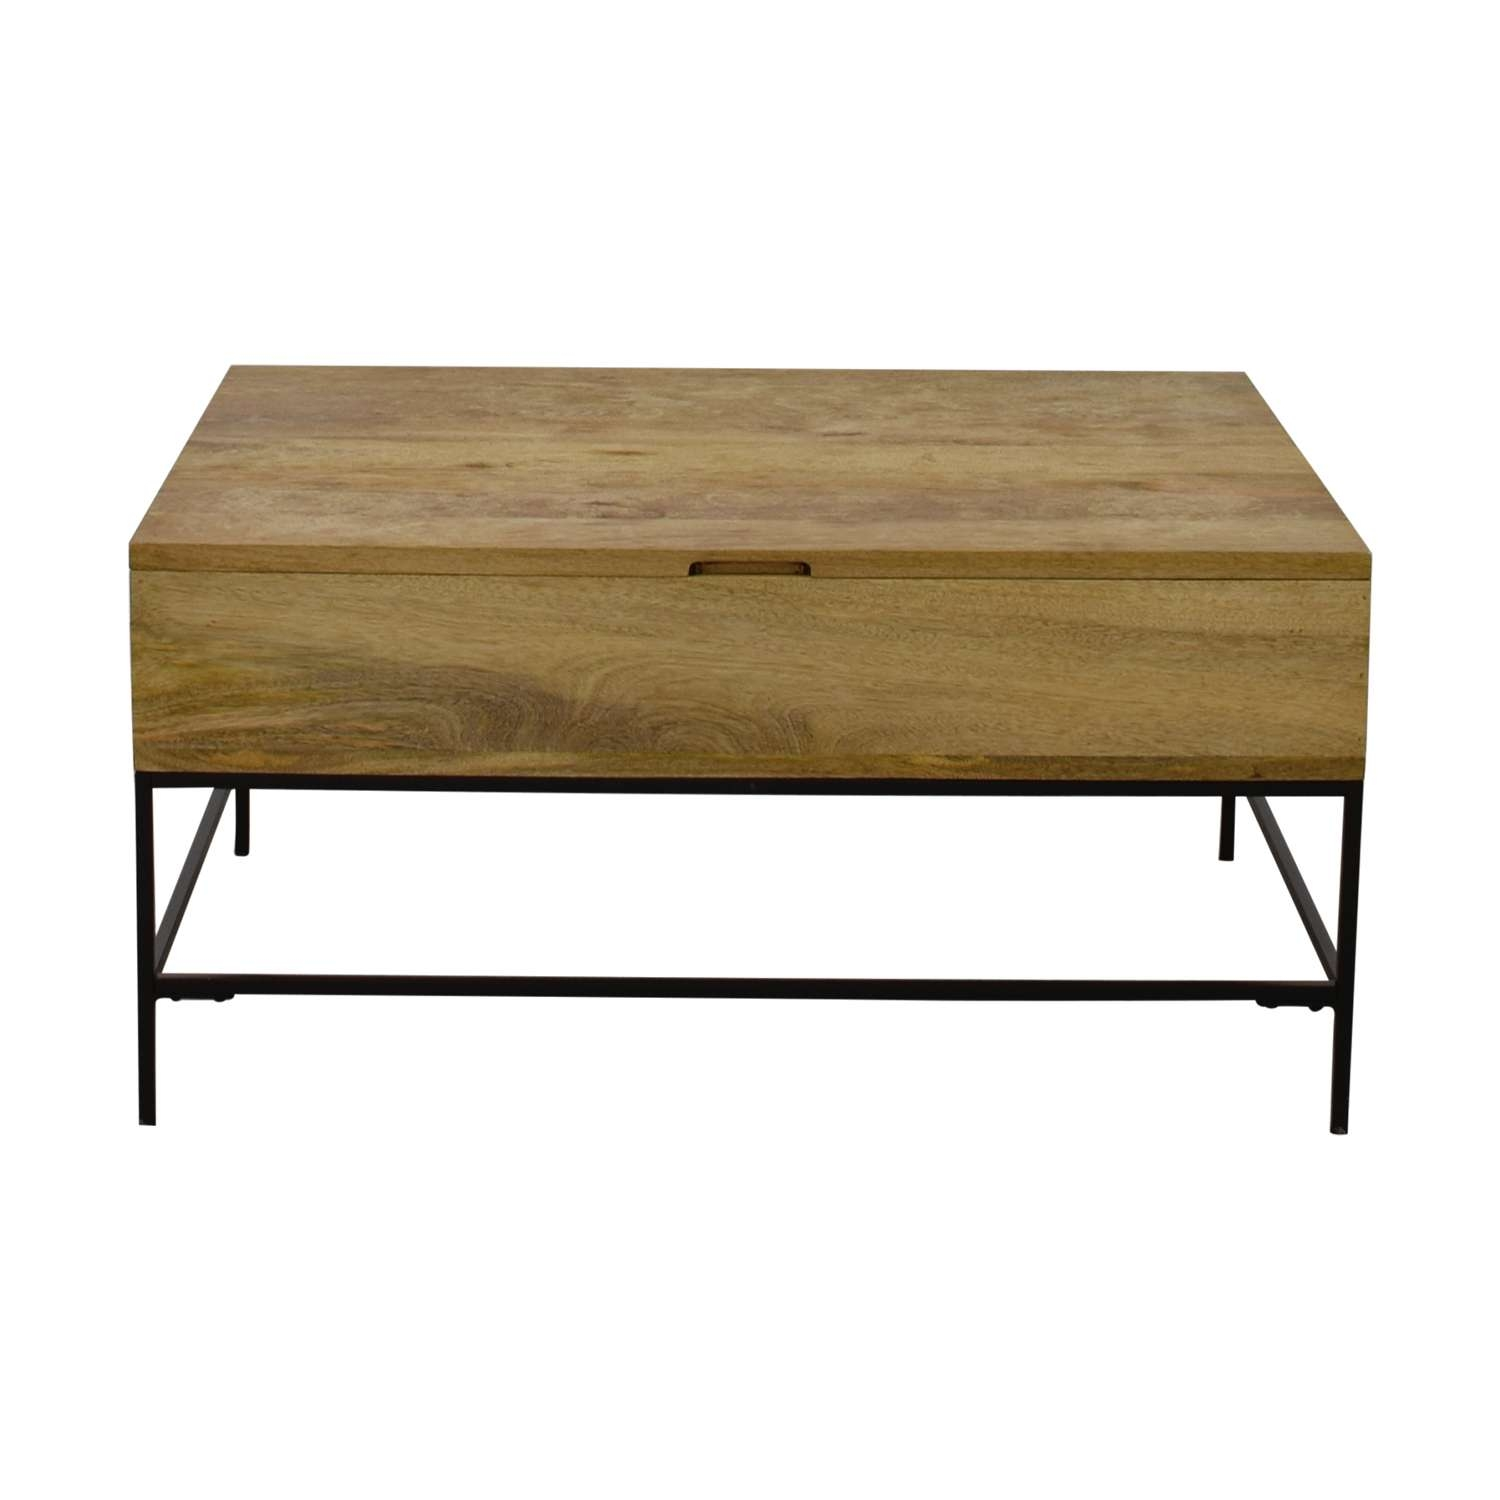 [%well Known Rustic Wooden Coffee Tables Intended For 47% Off – West Elm West Elm Rustic Wood Coffee Table / Tables|47% Off – West Elm West Elm Rustic Wood Coffee Table / Tables With Best And Newest Rustic Wooden Coffee Tables%] (View 20 of 20)